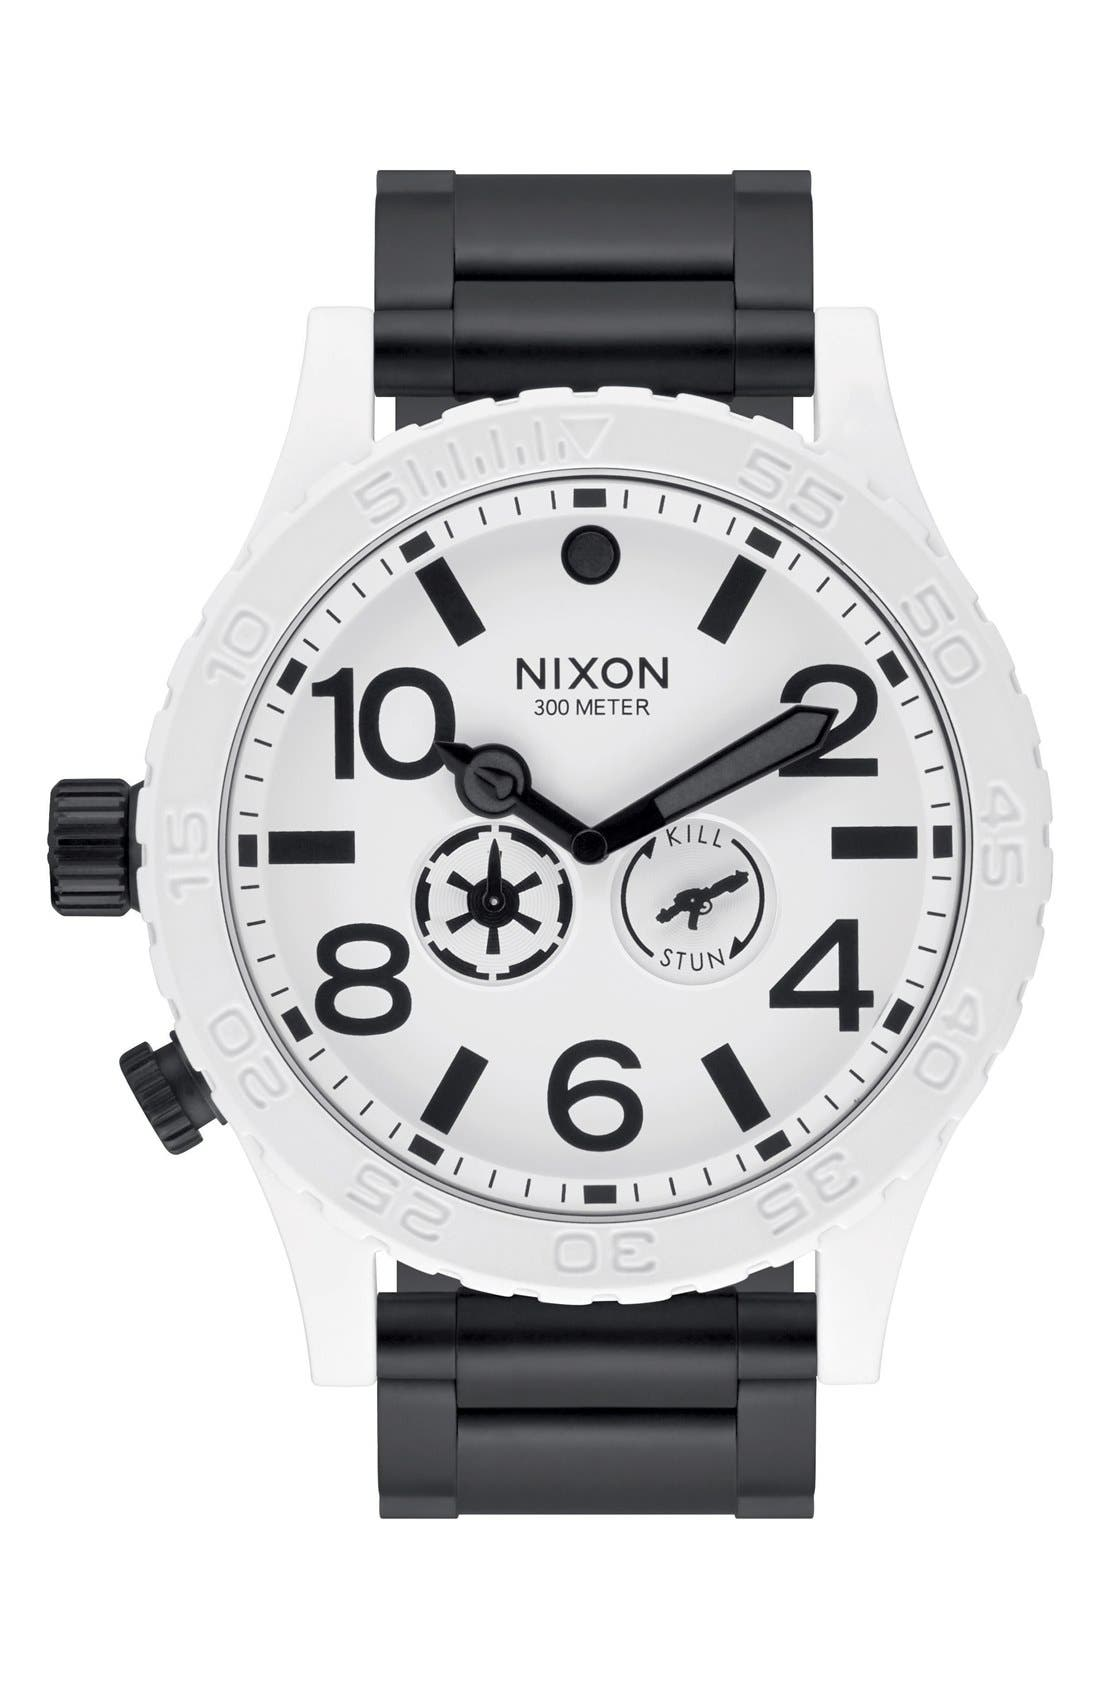 Main Image - Nixon 'Star Wars™ - The 51-30 Stormtrooper' Bracelet Watch, 51mm